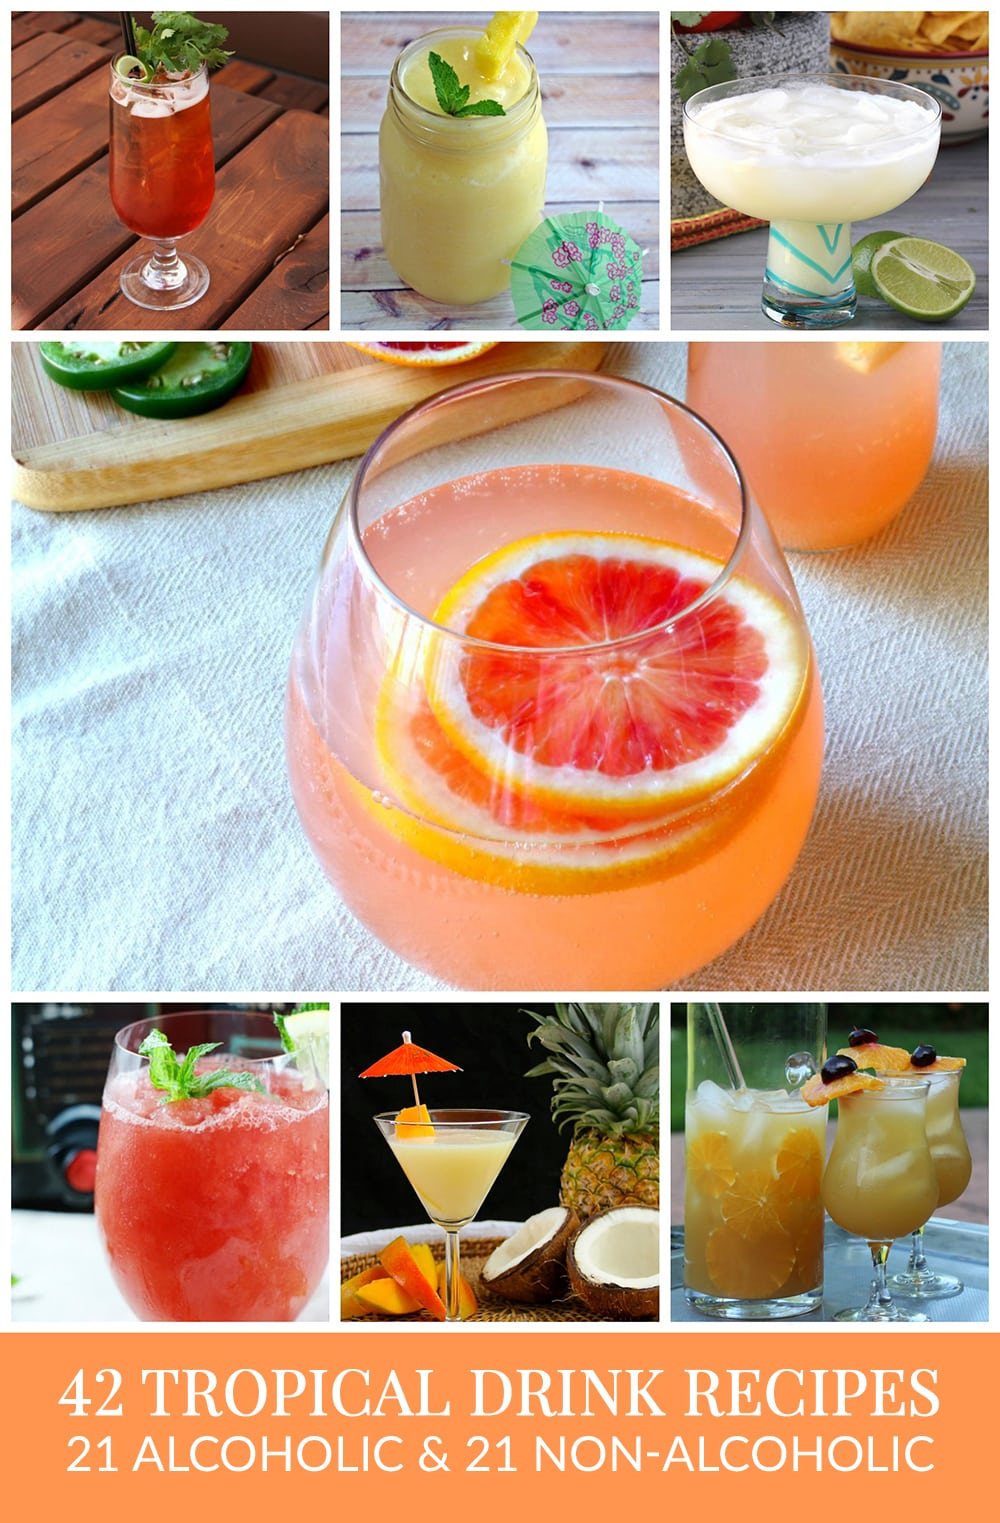 Tropical Drink Recipes